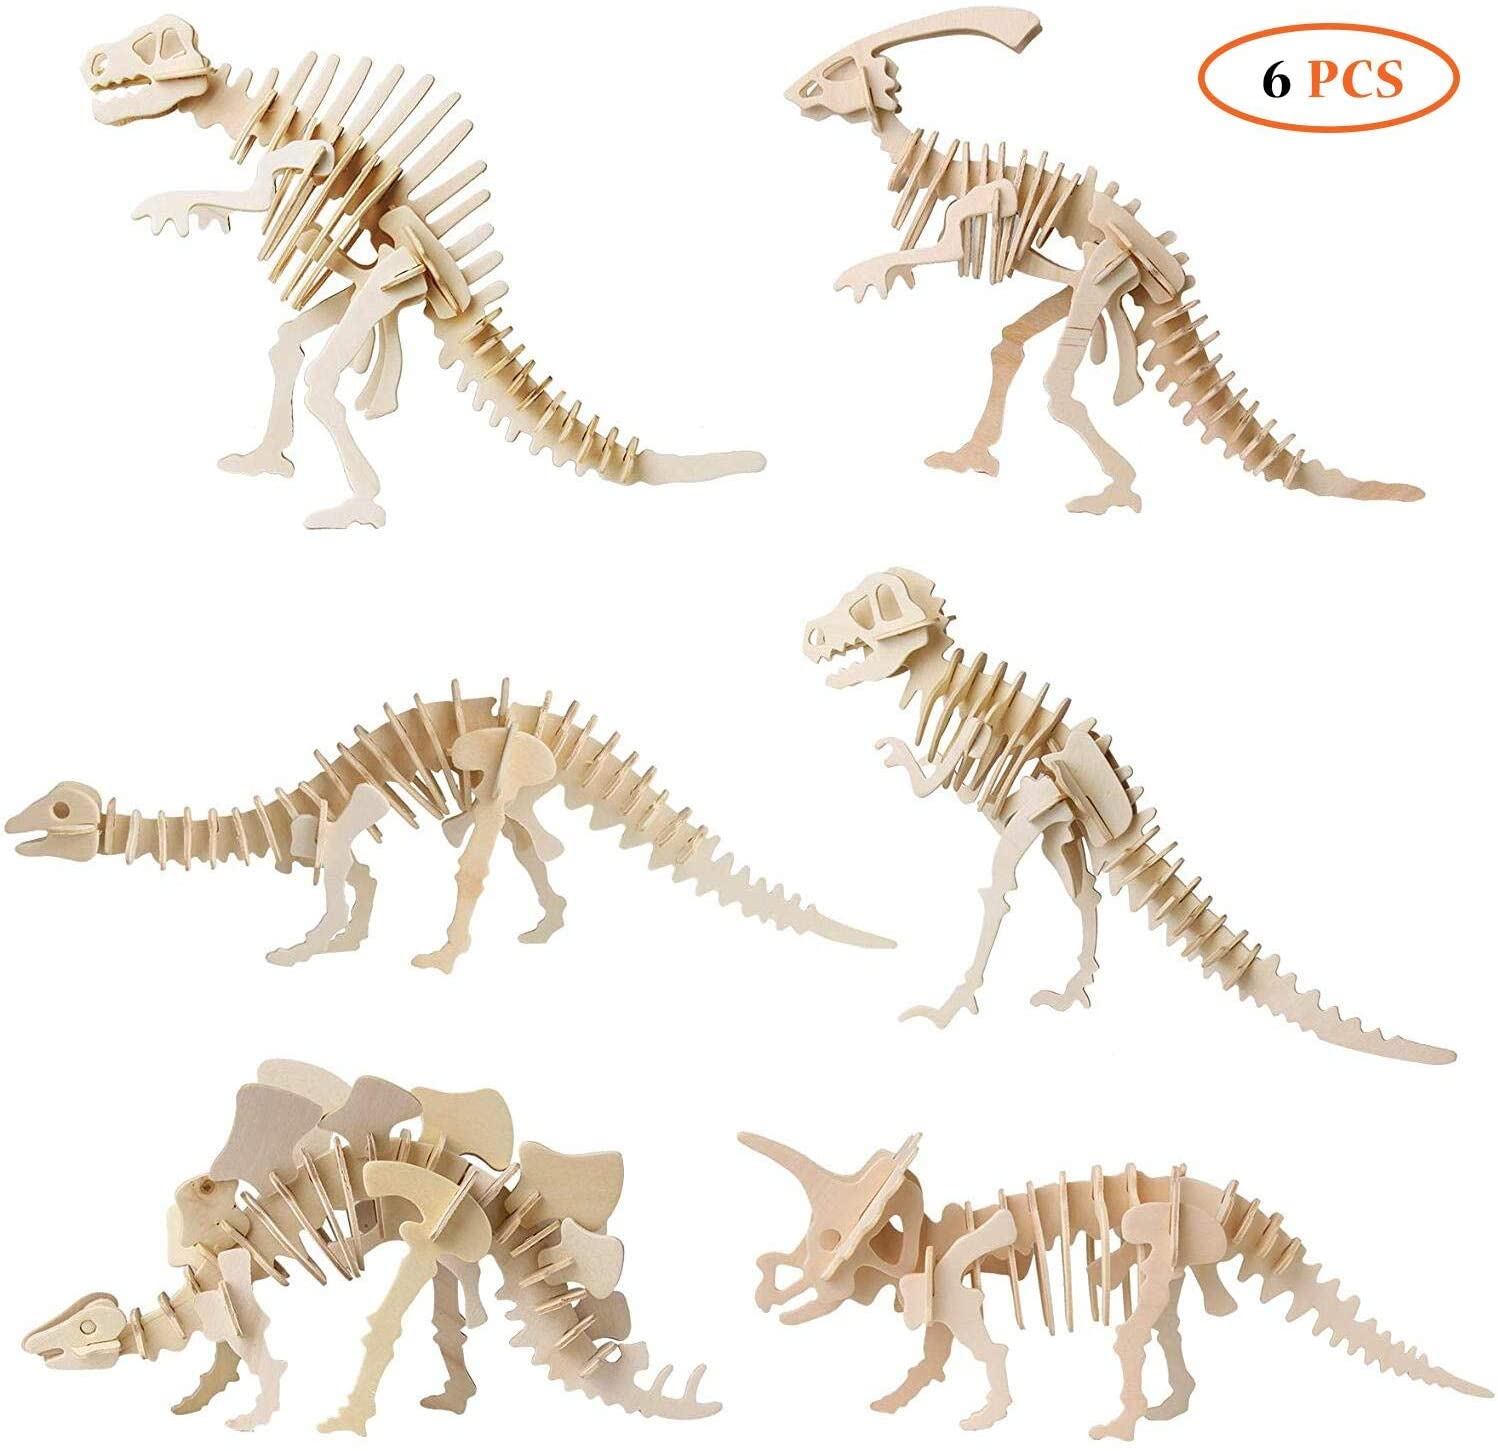 3D Wooden Dinosaur Puzzle with DIY Models Set Puzzle Gift Brain Teaser Toy for Kids Adult-6pcs